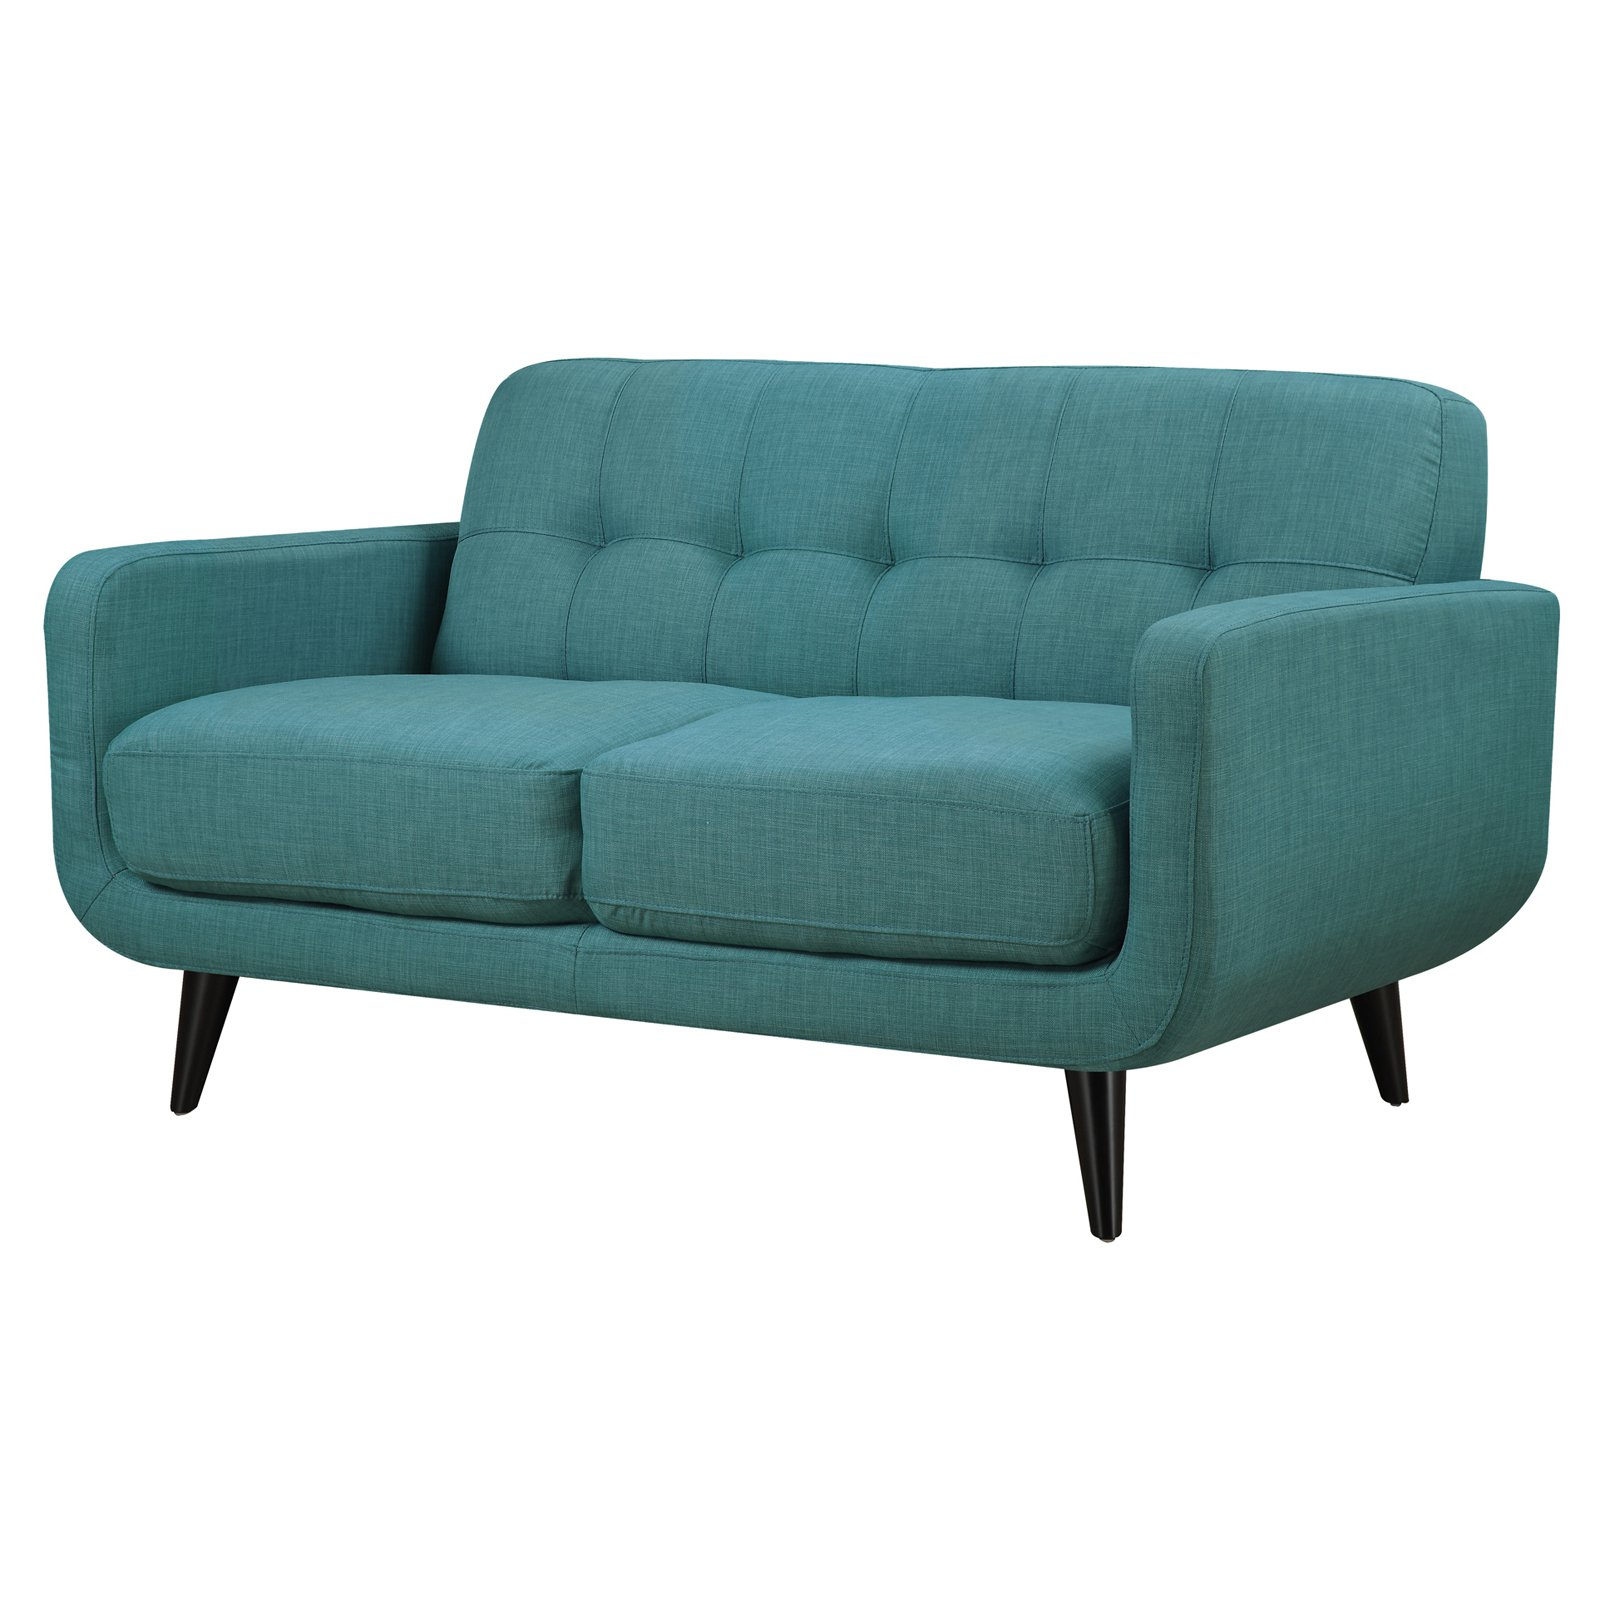 Picket House Furnishings Hailey Loveseat Teal Love Seat Picket